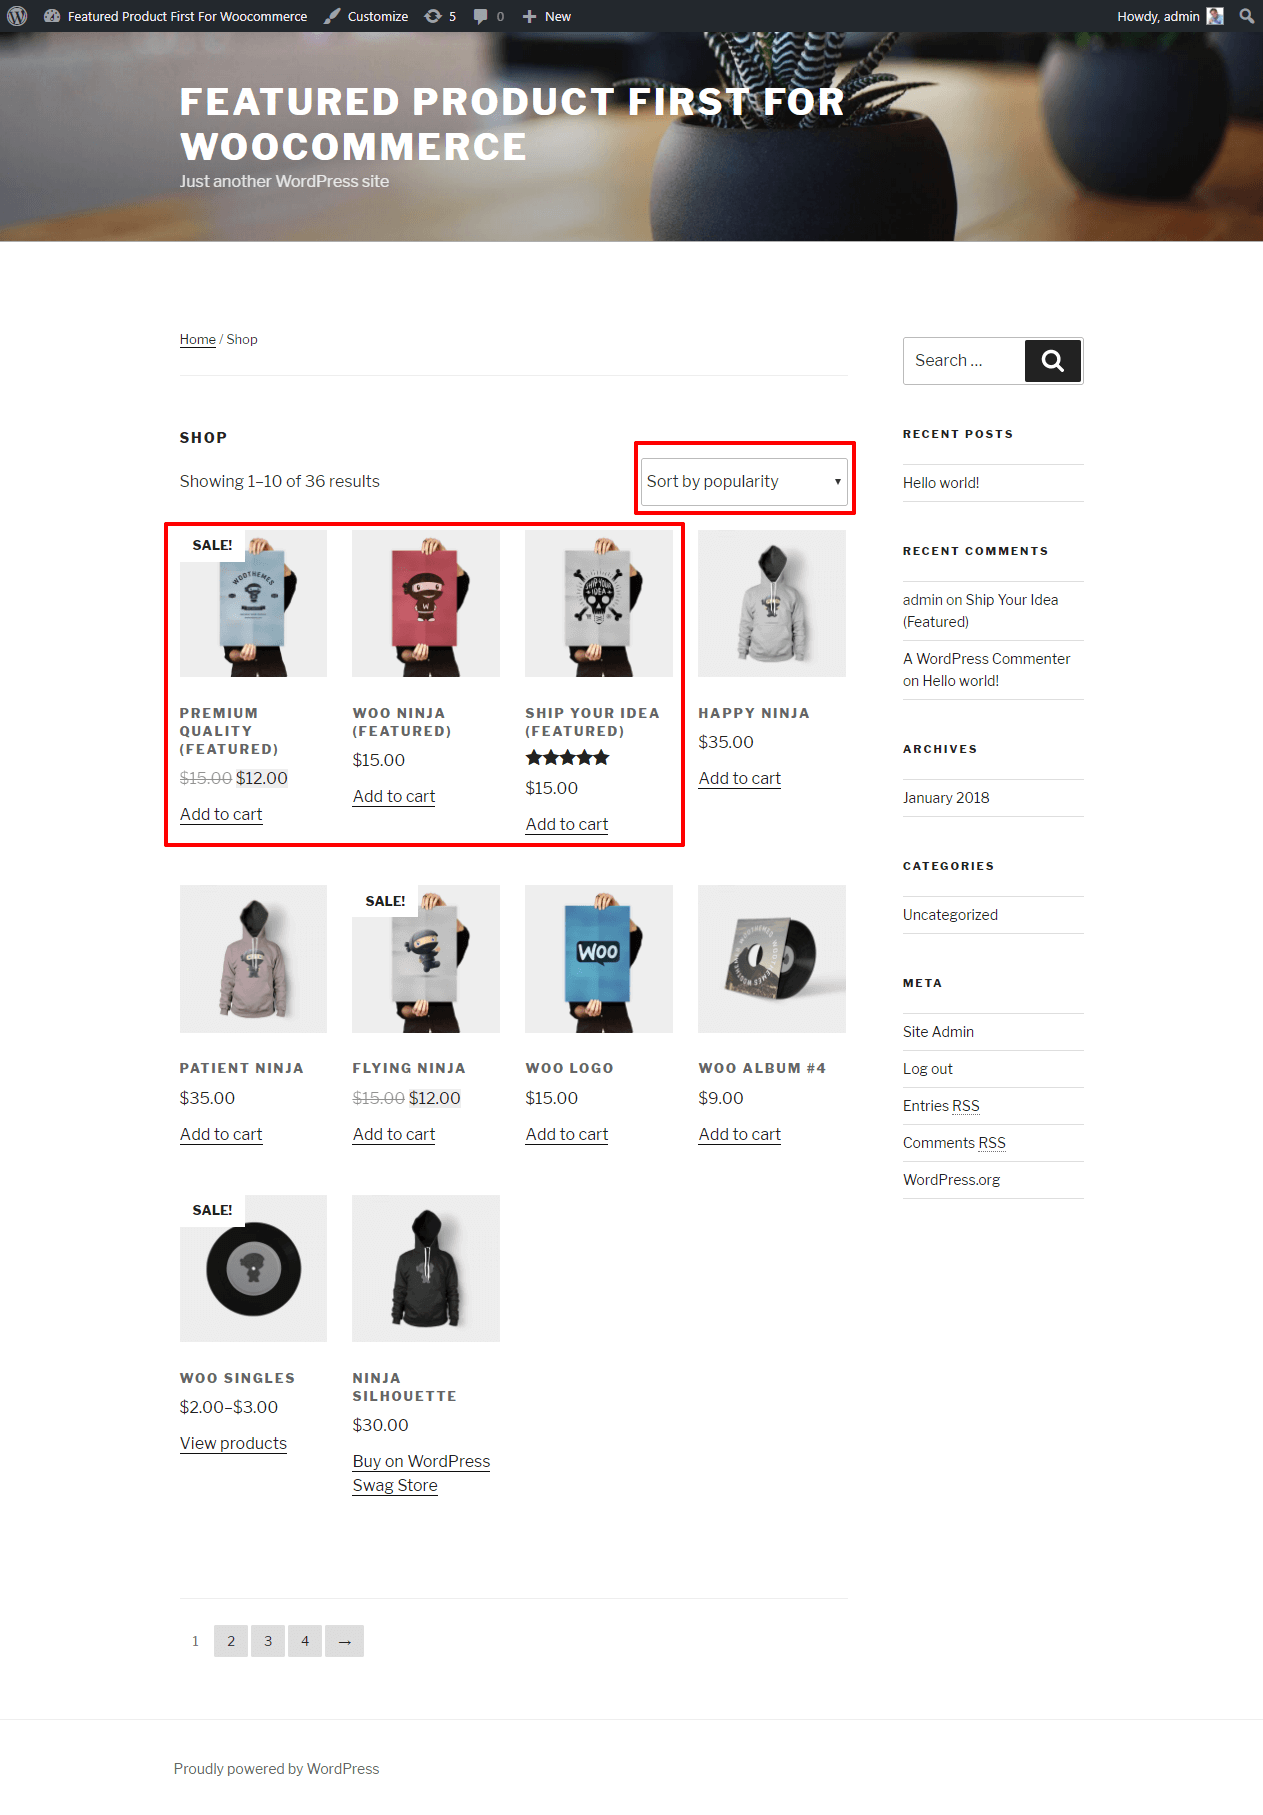 featured-products-first-for-woocommerce screenshot 2